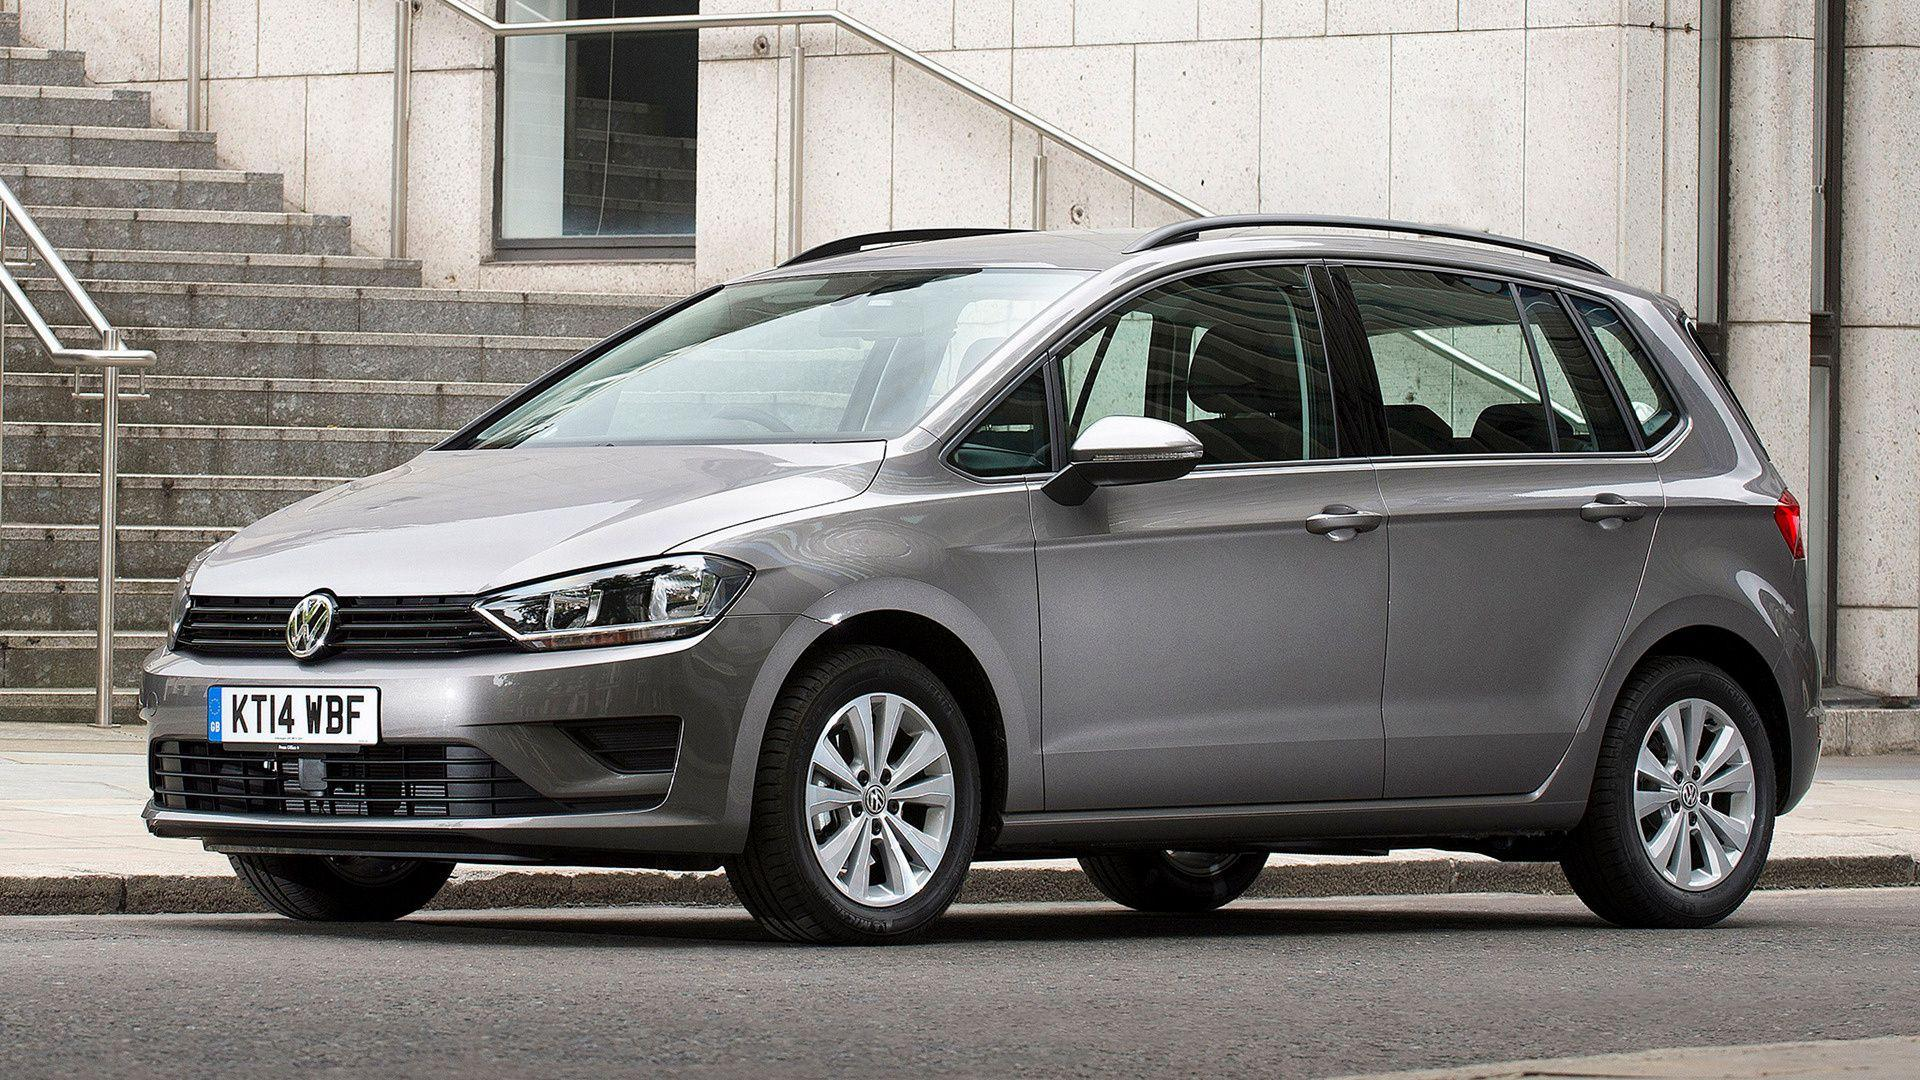 Volkswagen Golf SV (2014) UK Wallpapers and HD Images - Car Pixel